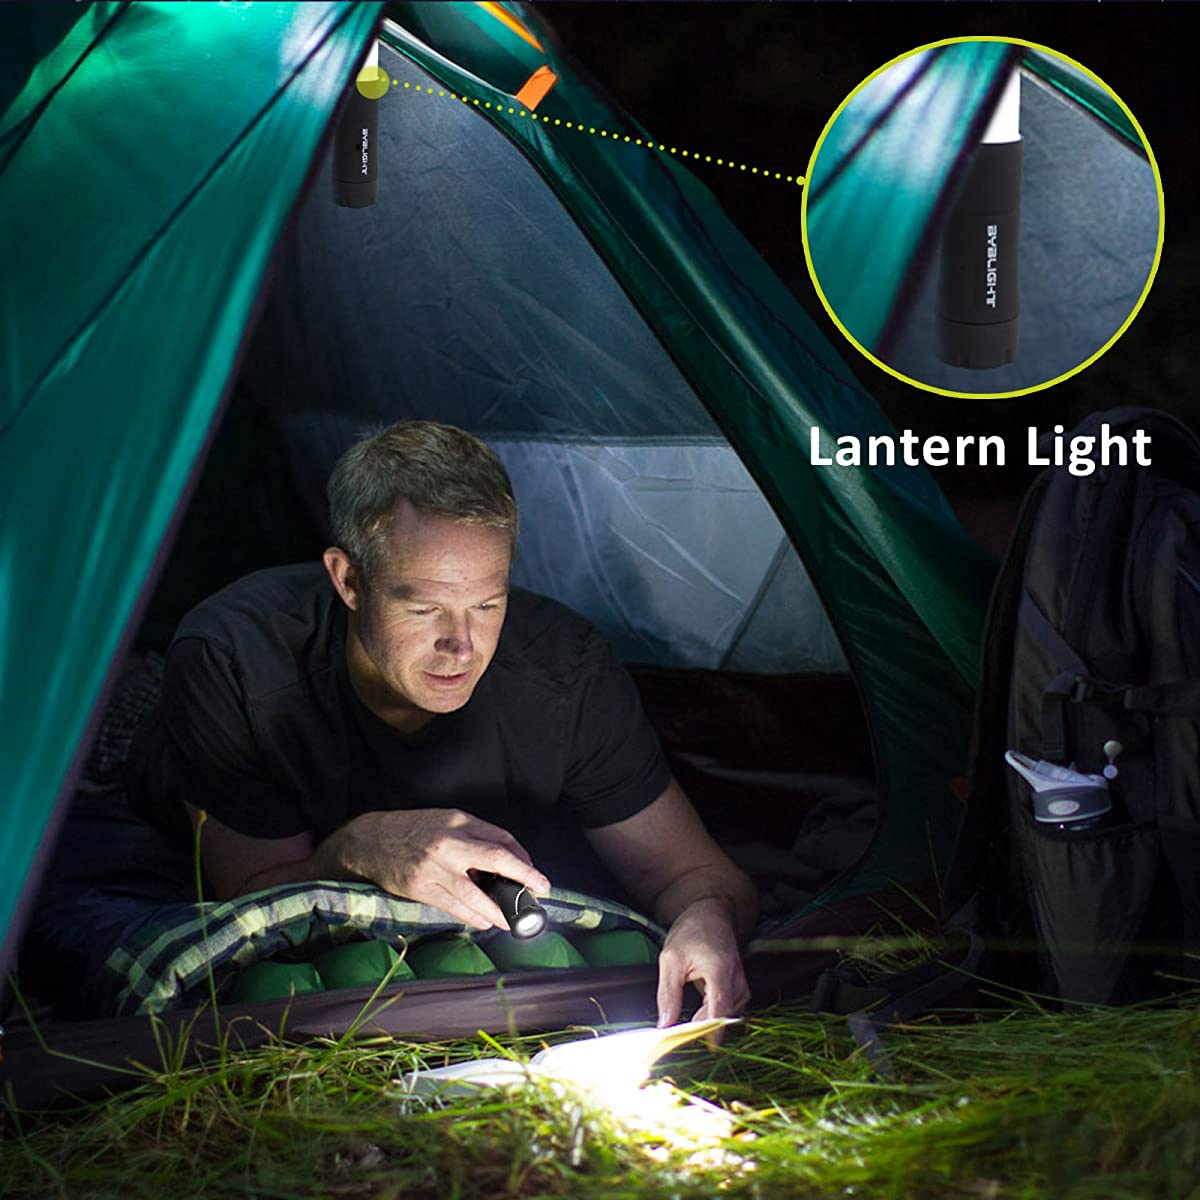 Lantern Flashlights, BYBLIGHT 2 in 1 Camping Lantern and Flashlight with 3 Modes, Zoomable & High Output Bright for Camping, Hiking, and Emergencies